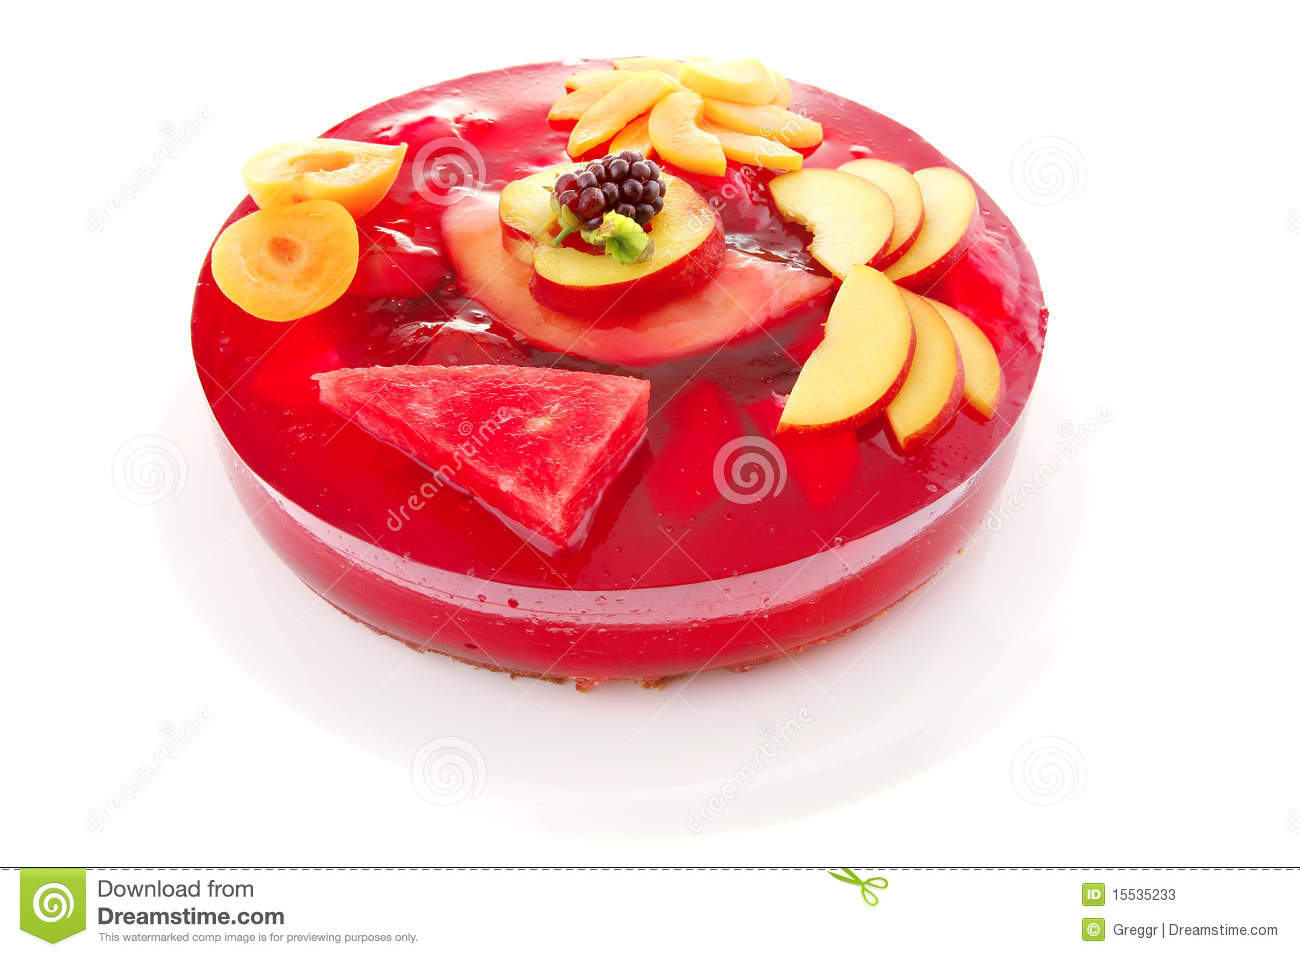 Red Jelly Cake Recipe: Red Jelly Cake And Peach Stock Photos